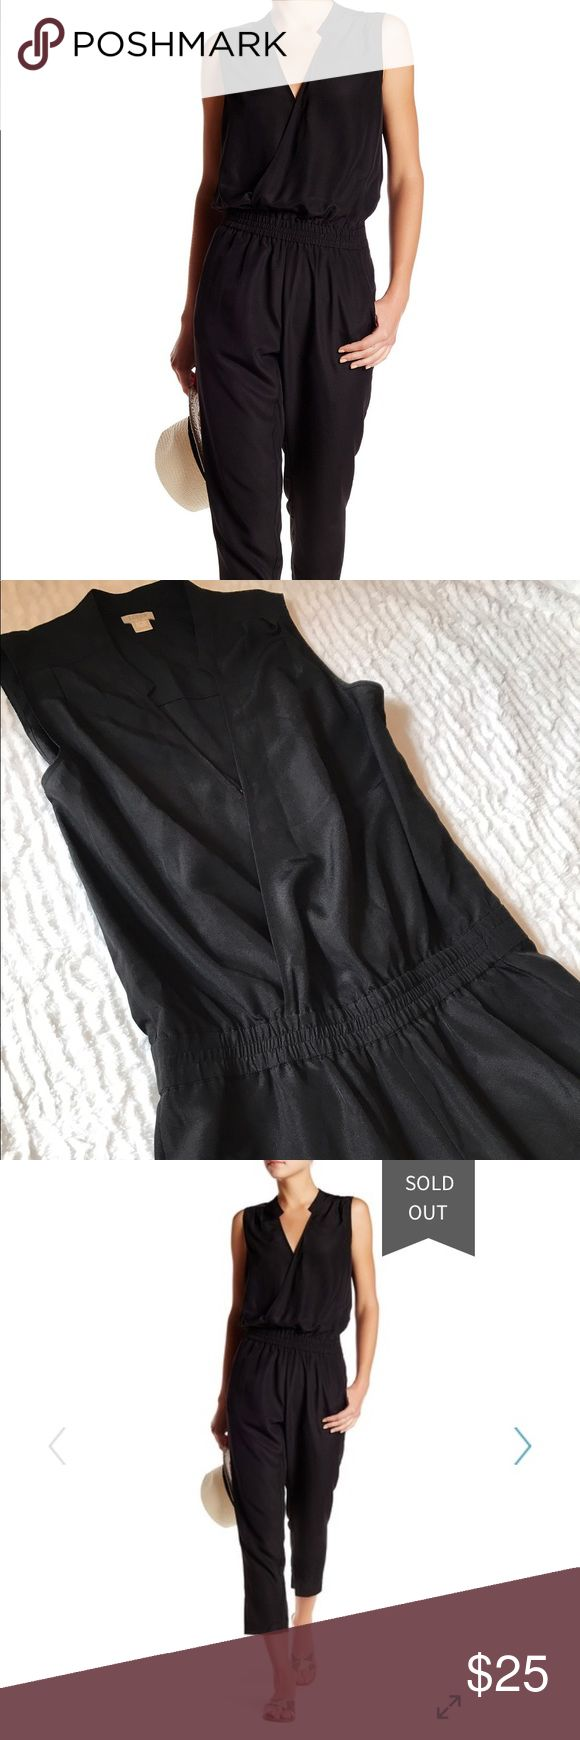 J.Crew Factory Black Jump Suit V neck black jump suit with cinched elastic waist band. J. Crew Factory Pants Jumpsuits & Rompers